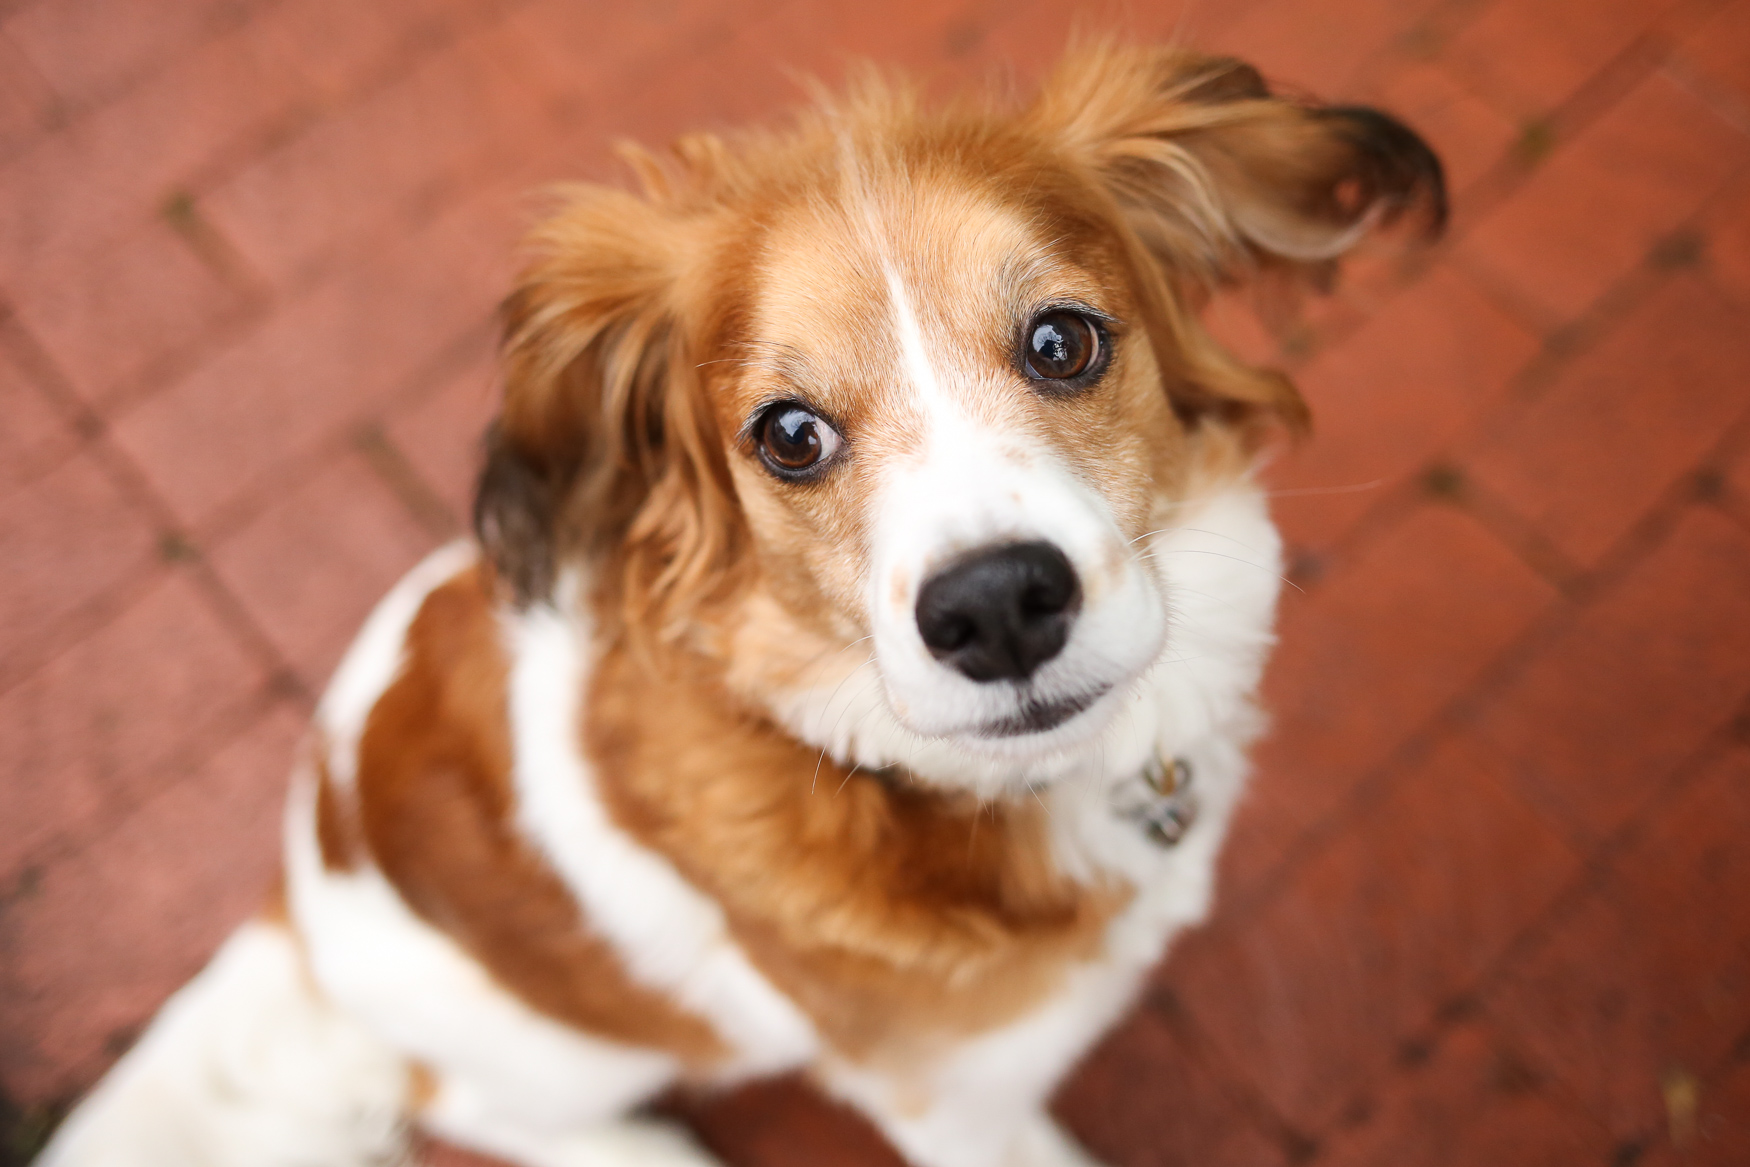 "Meet Penny, a 6.5-year-old Cavalier King Charles/Cocker Spaniel mix. Penny has been living with her mom since 2013, when she adopted Penny during her senior year of college. Mom went to a rescue group in her neighborhood ""just to look"" and the rest was history! Penny is obsessed with her glow-in-the-dark Chuck-it ball and playing fetch, being a cuddle monster and sitting on patios with her parents. She hates salmon and being woken up early-- she would sleep all day if she had it her way. Penny is a serious squirrel hunter, and goes well beyond chasing them up trees, to the point where she will take a running start and jump several feet up the tree trunk and try to grab on with her paws! You can follow all of Penny's adventures on her Insta: @pennythedcpup. If you're interested in having your pup featured, drop us a line at aandrade@dcrefined.com (Image: Amanda Andrade-Rhoades/DC Refined)"